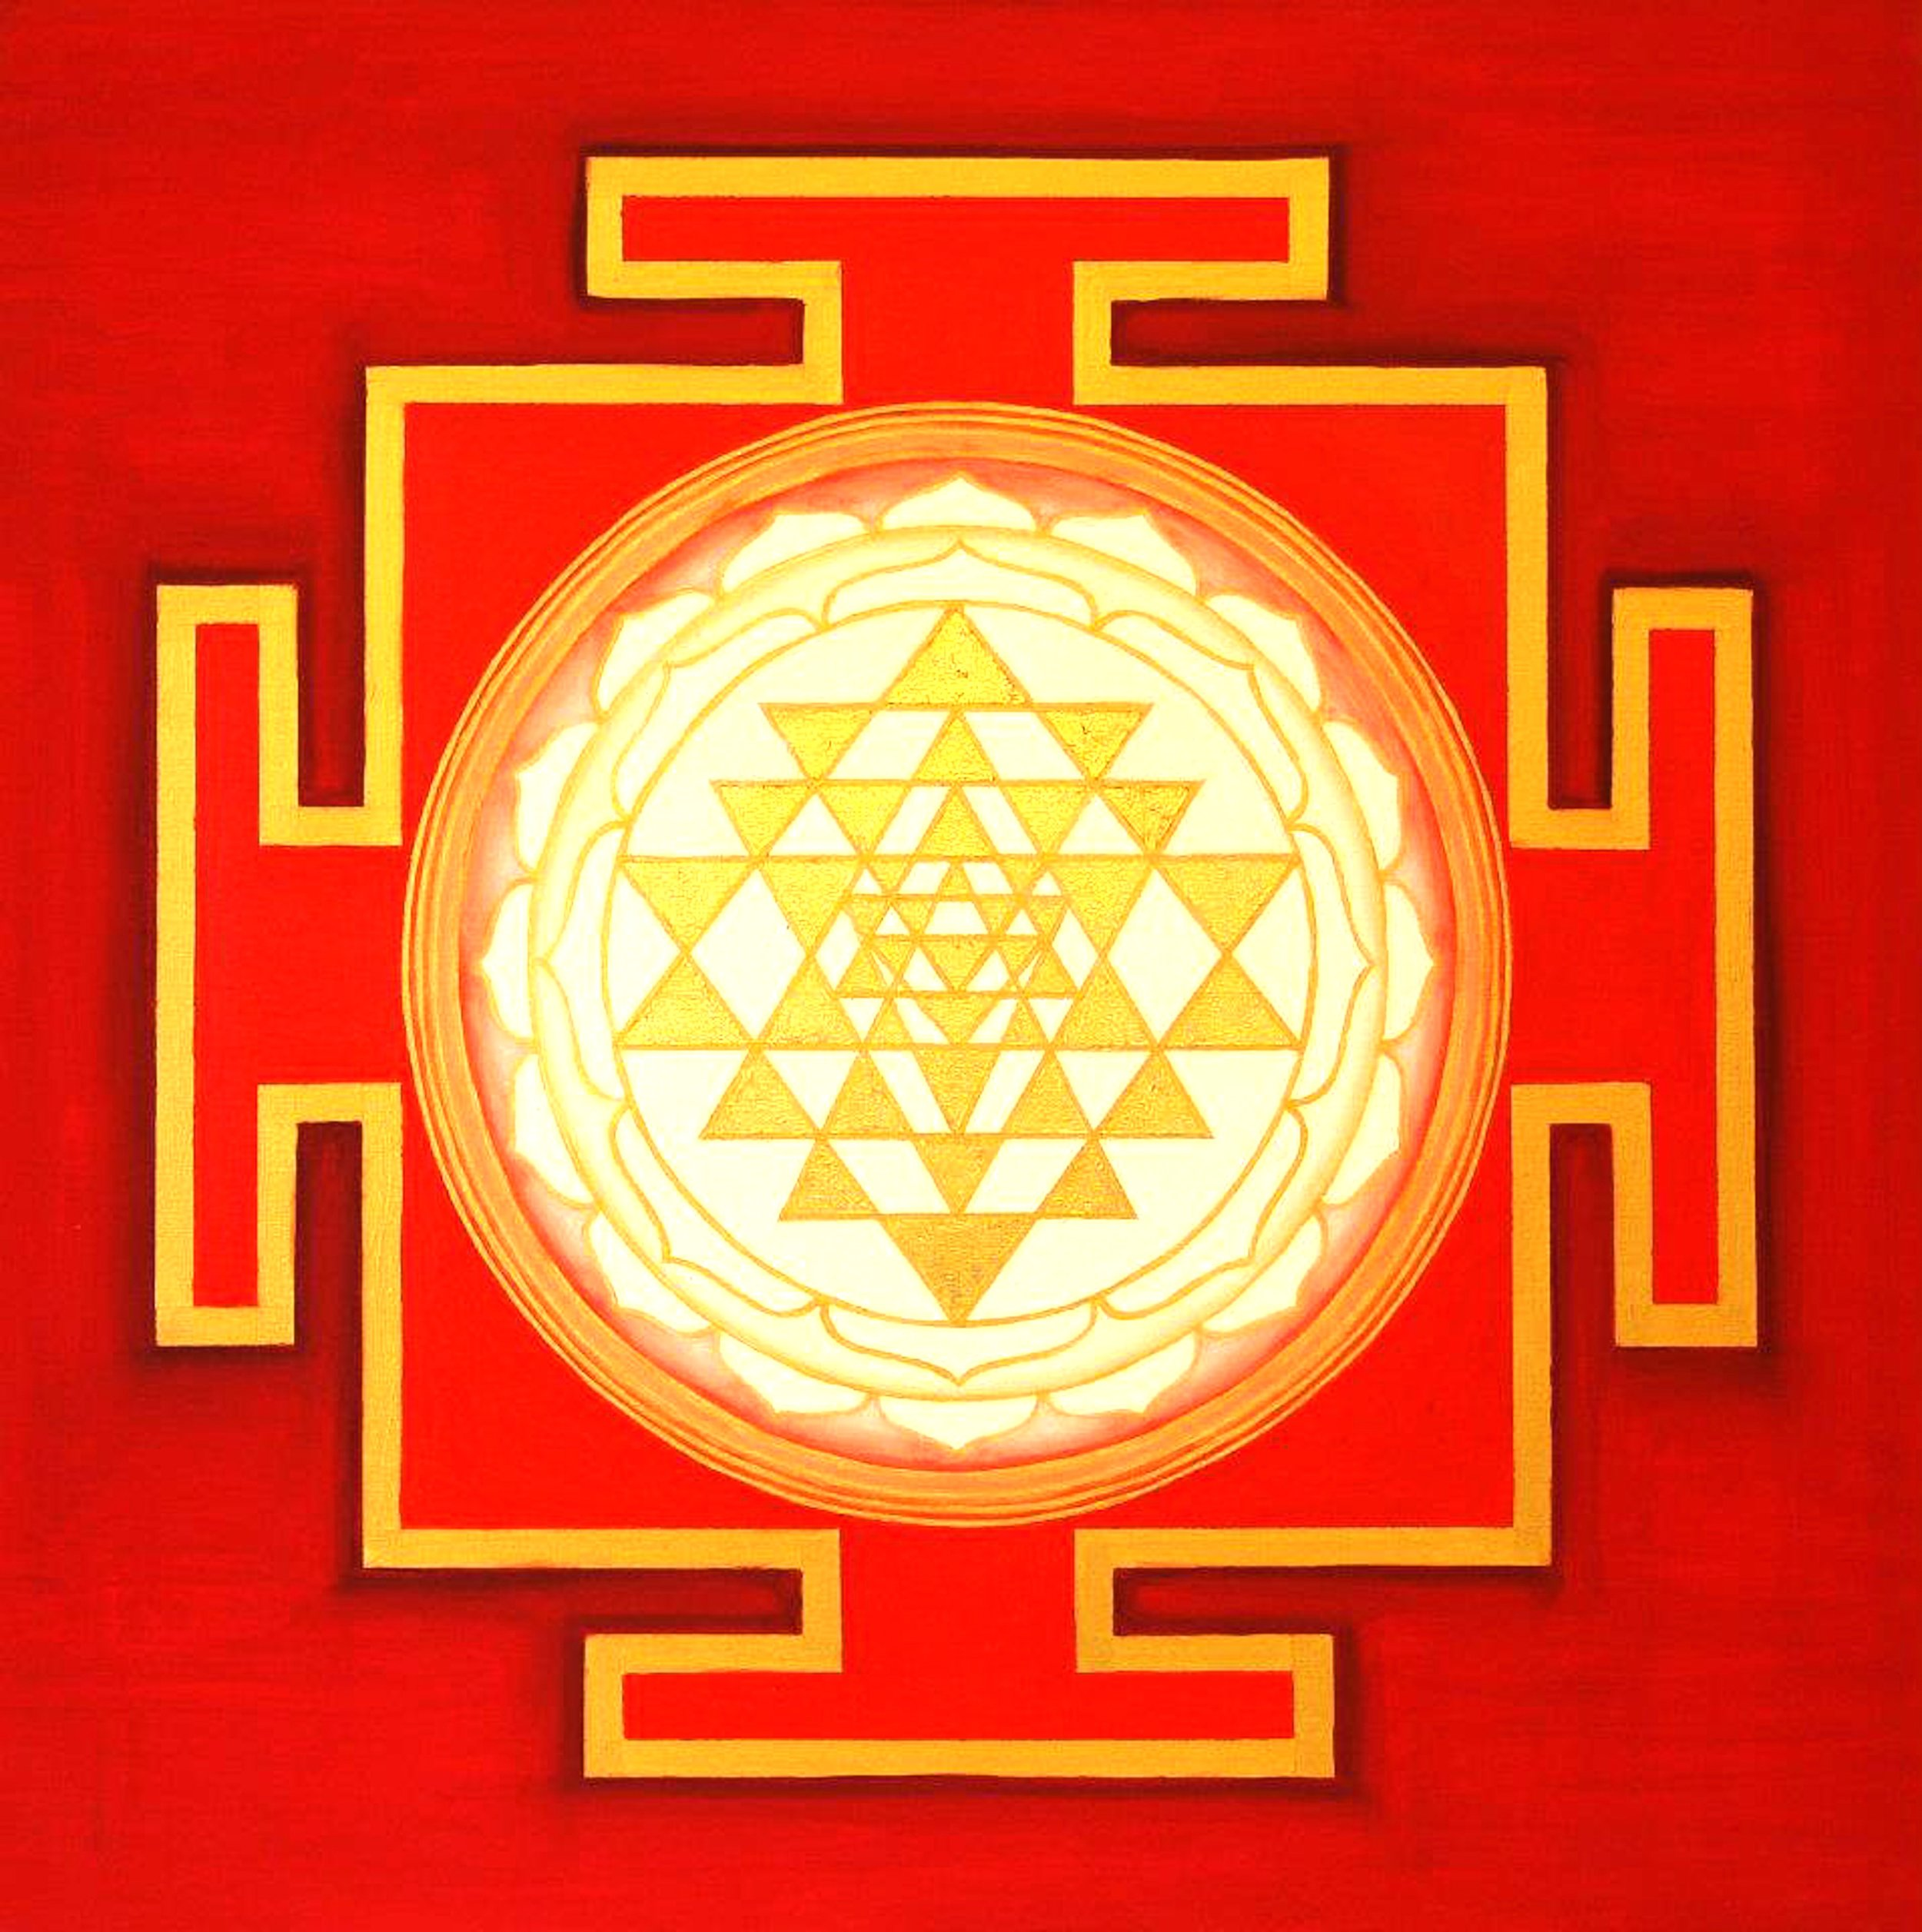 Yantra of the Great Cosmic Power Tripura Sundari100x100 cm by Ines Honfi.jpg